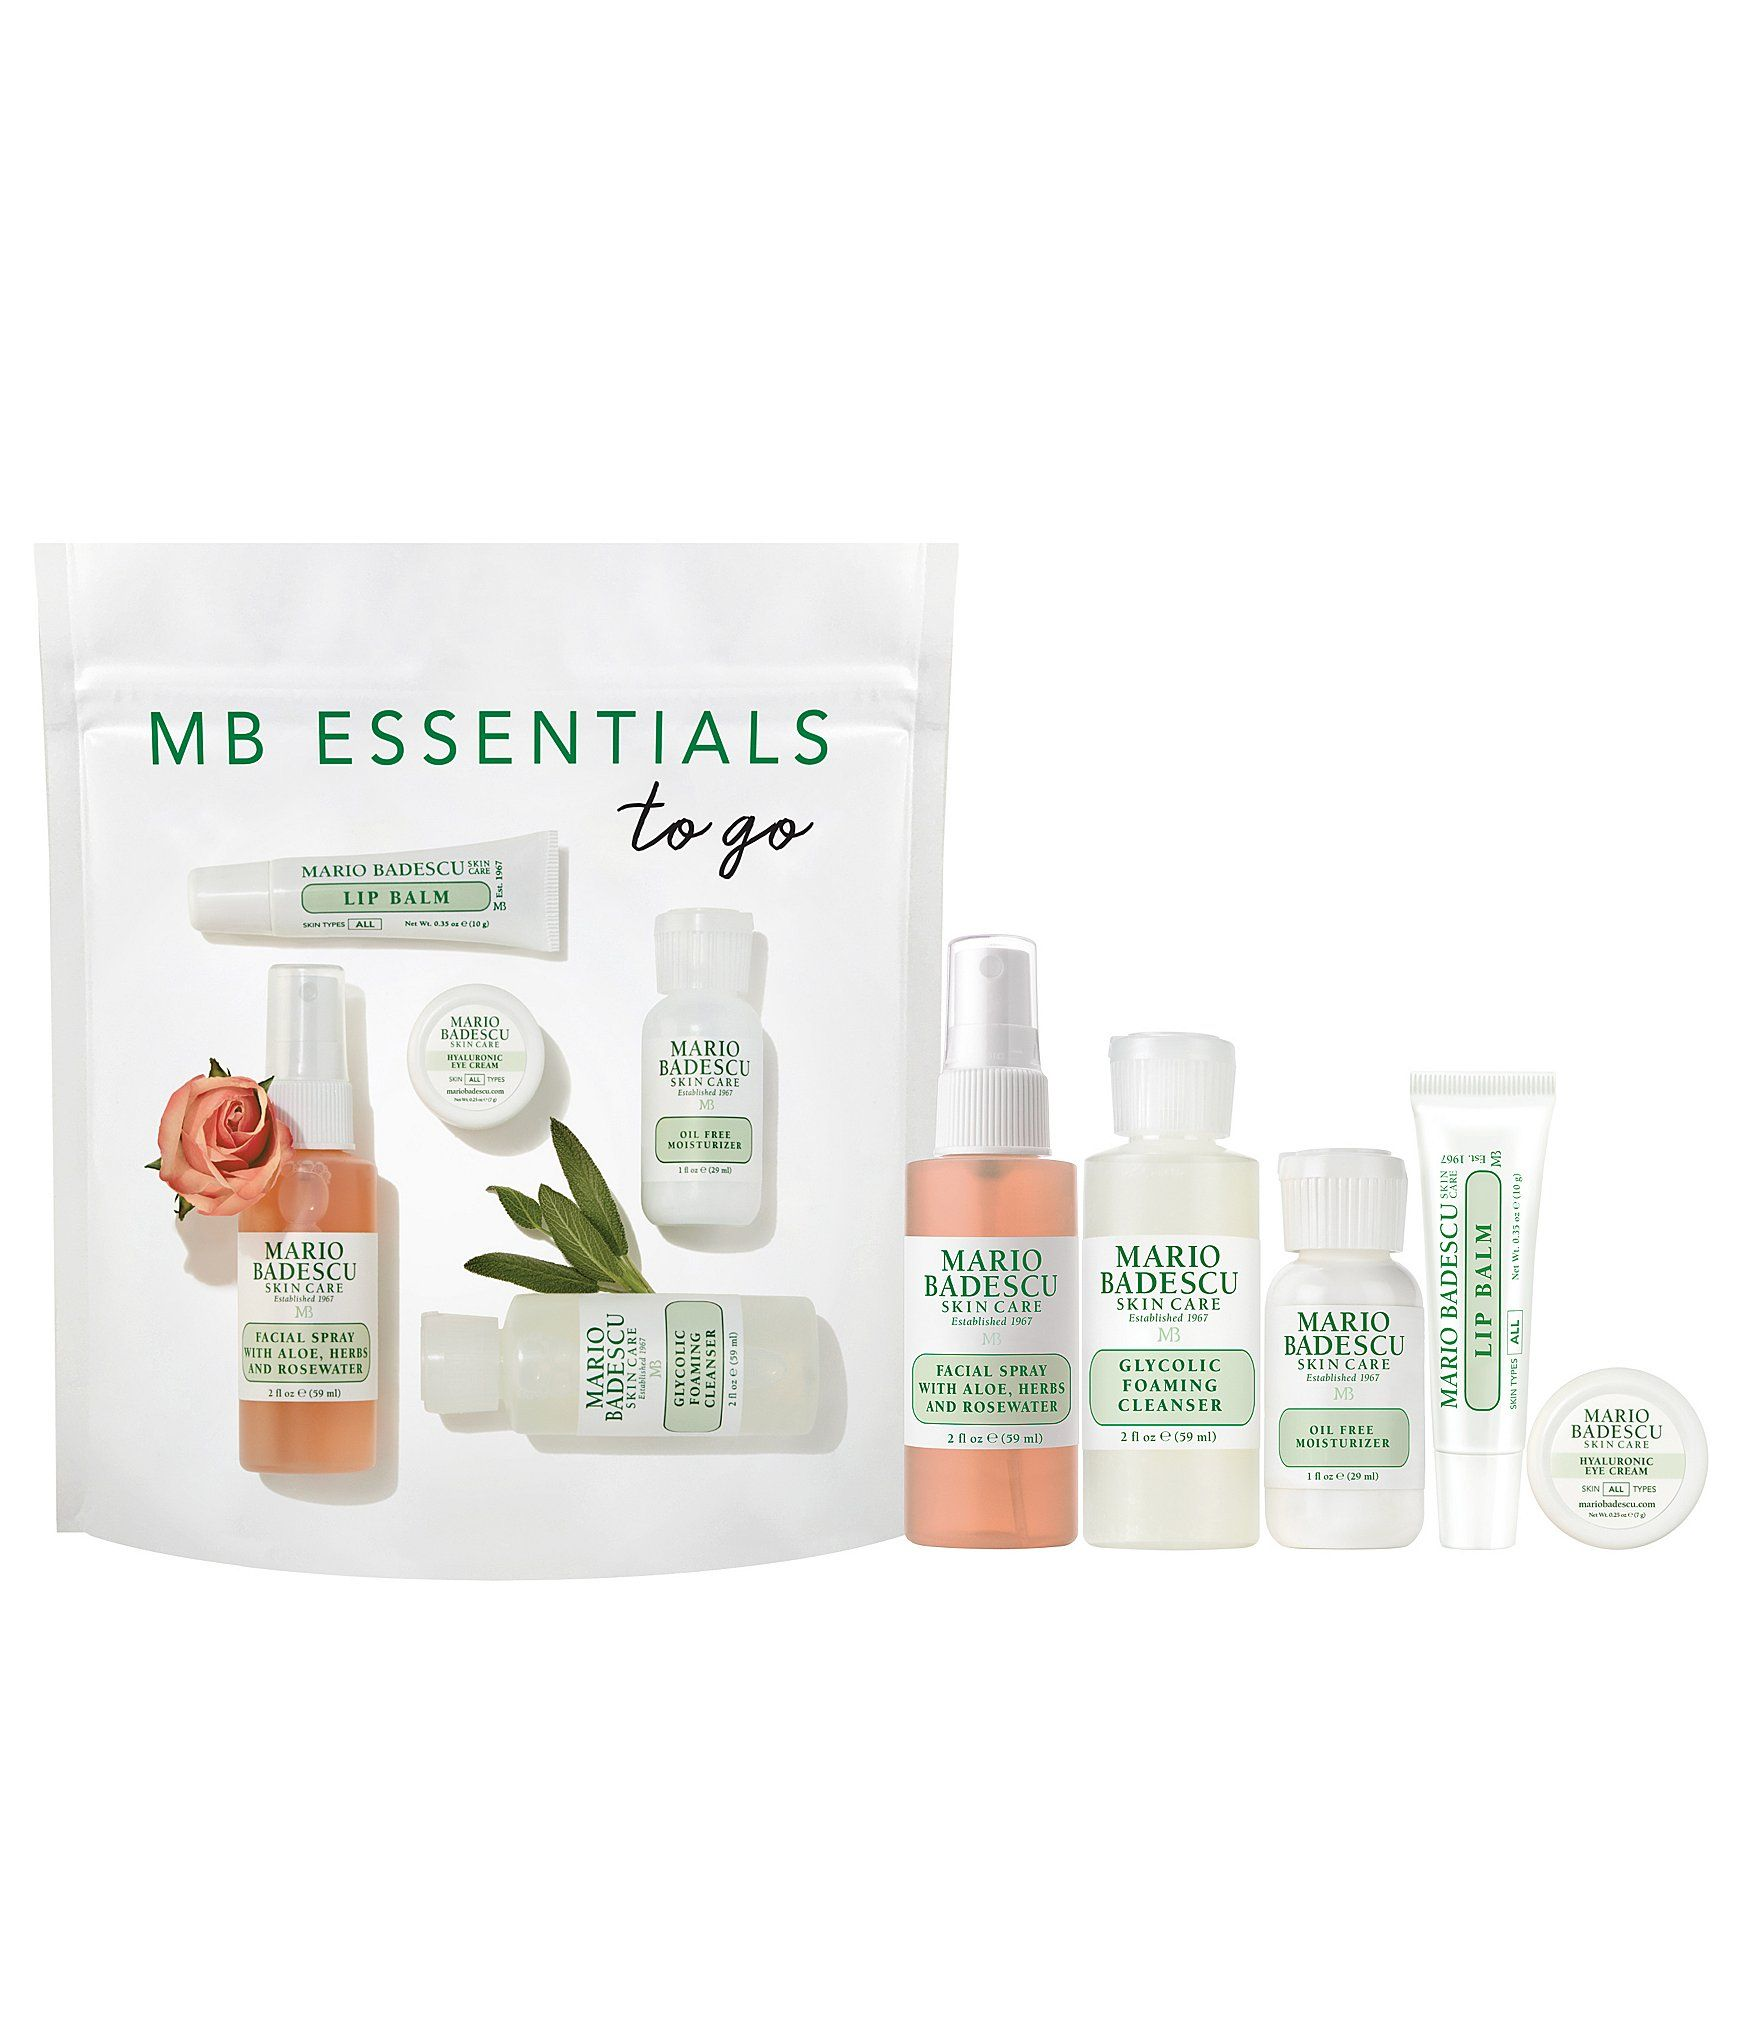 Mario Badescu Exclusive Essentials To Go Set Dillard S In 2020 Mario Badescu Mario Bedescu Mario Badescu Skin Care